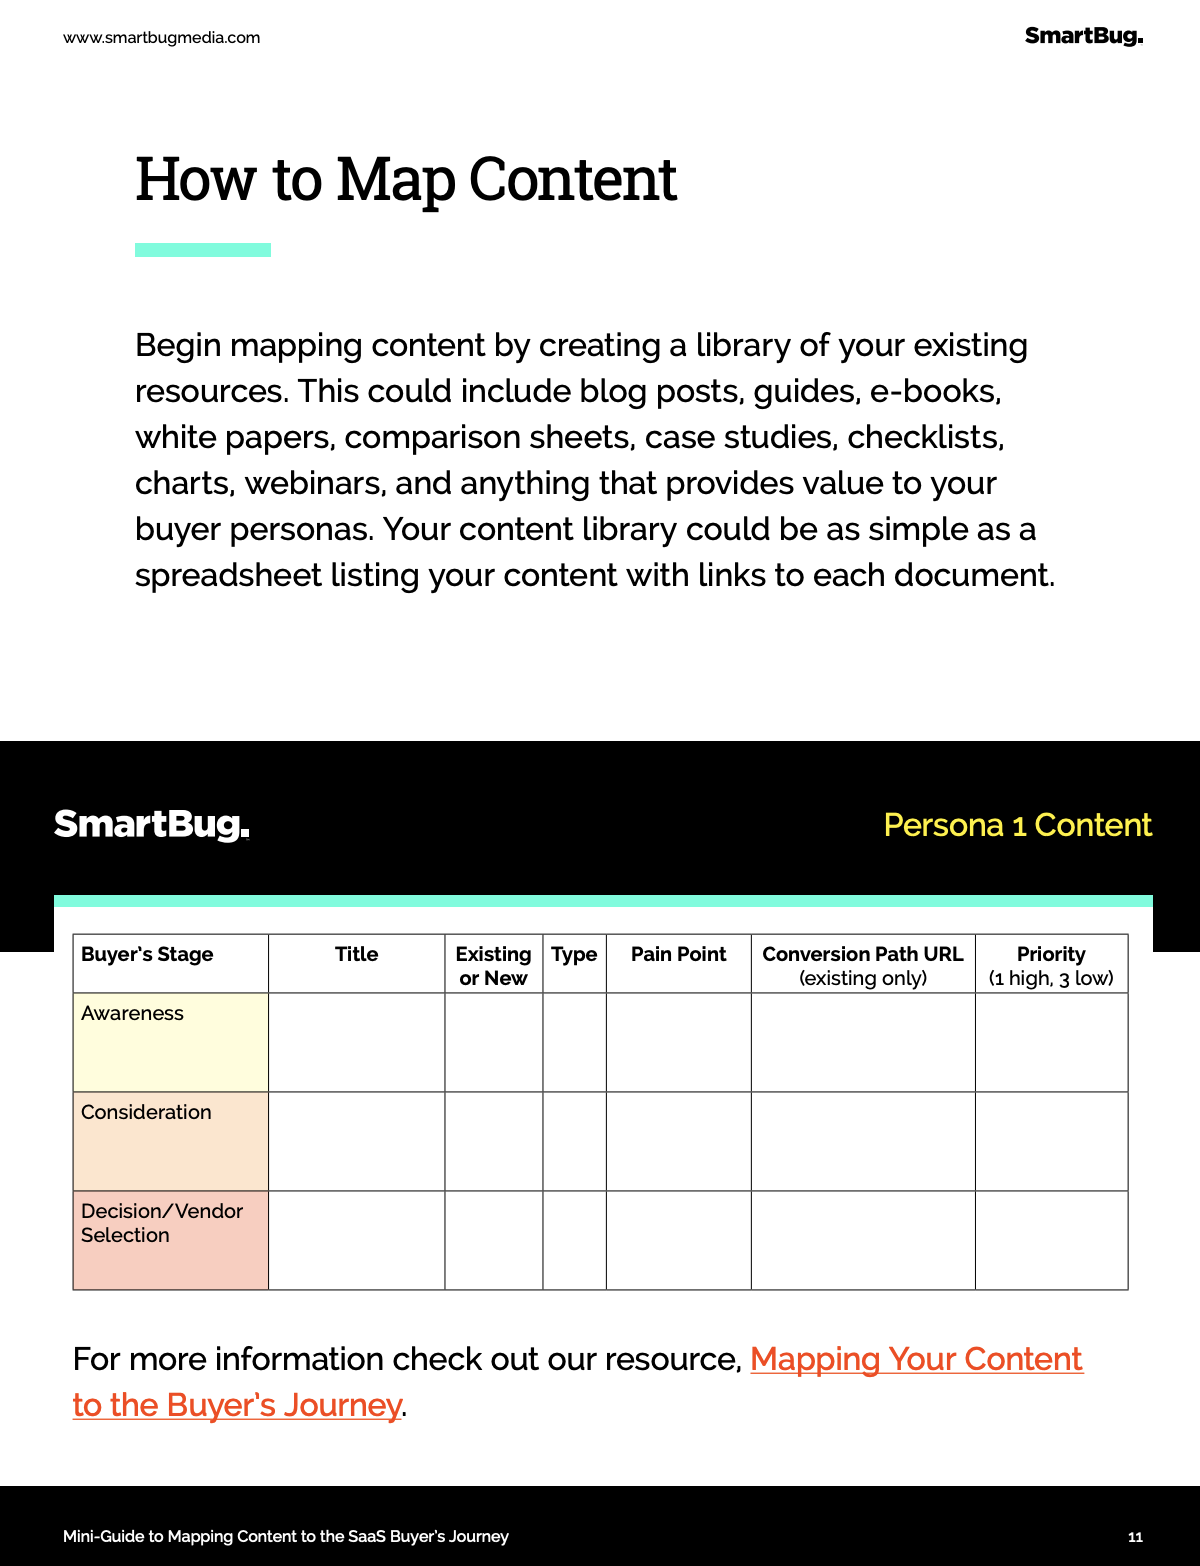 How to Map Content